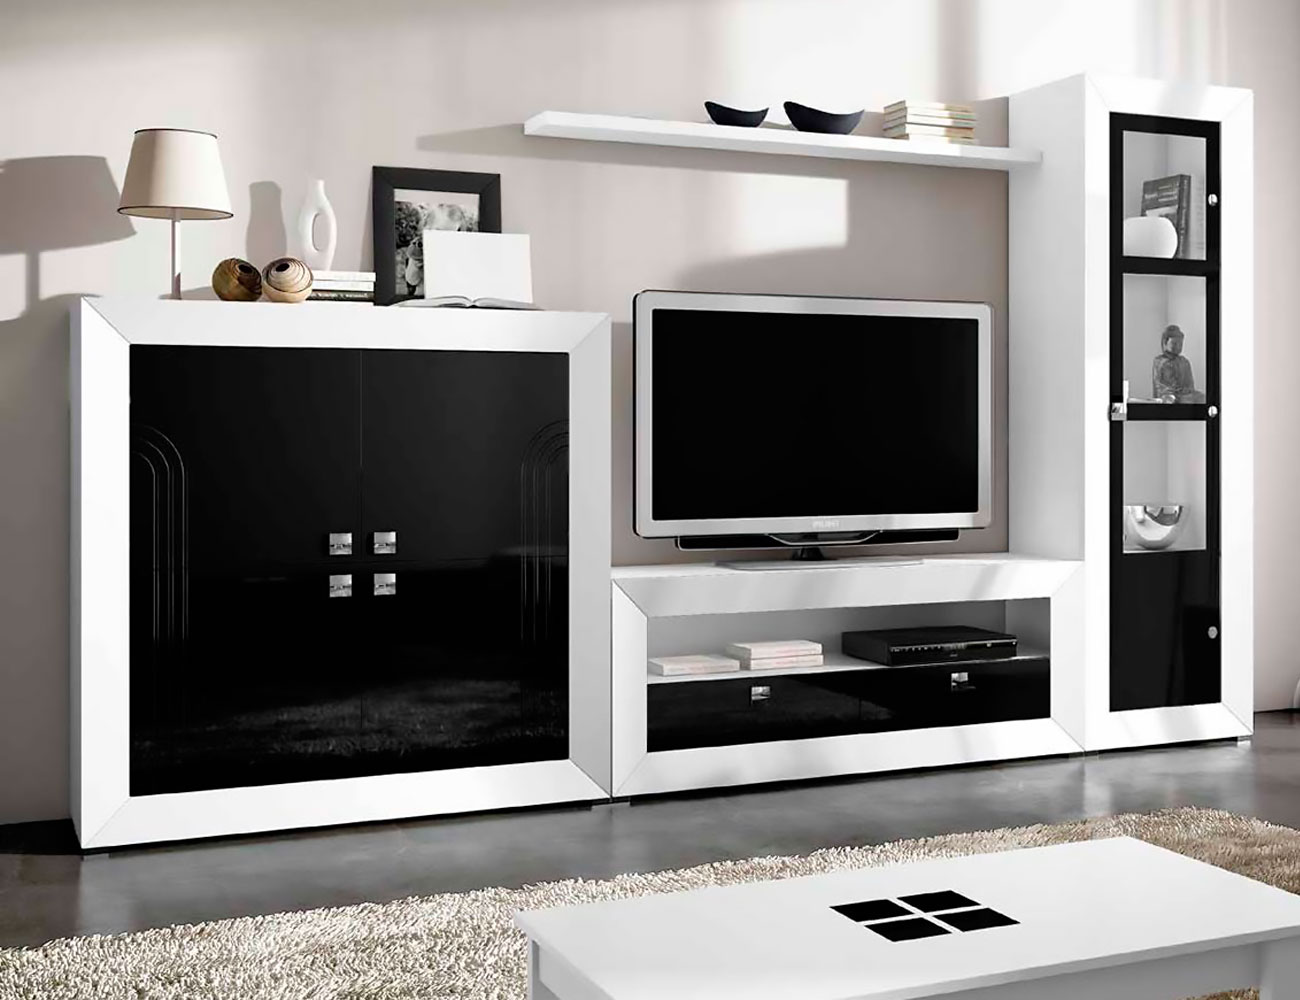 Mueble de sal n modular moderno lacado factory del for Mueble modular salon